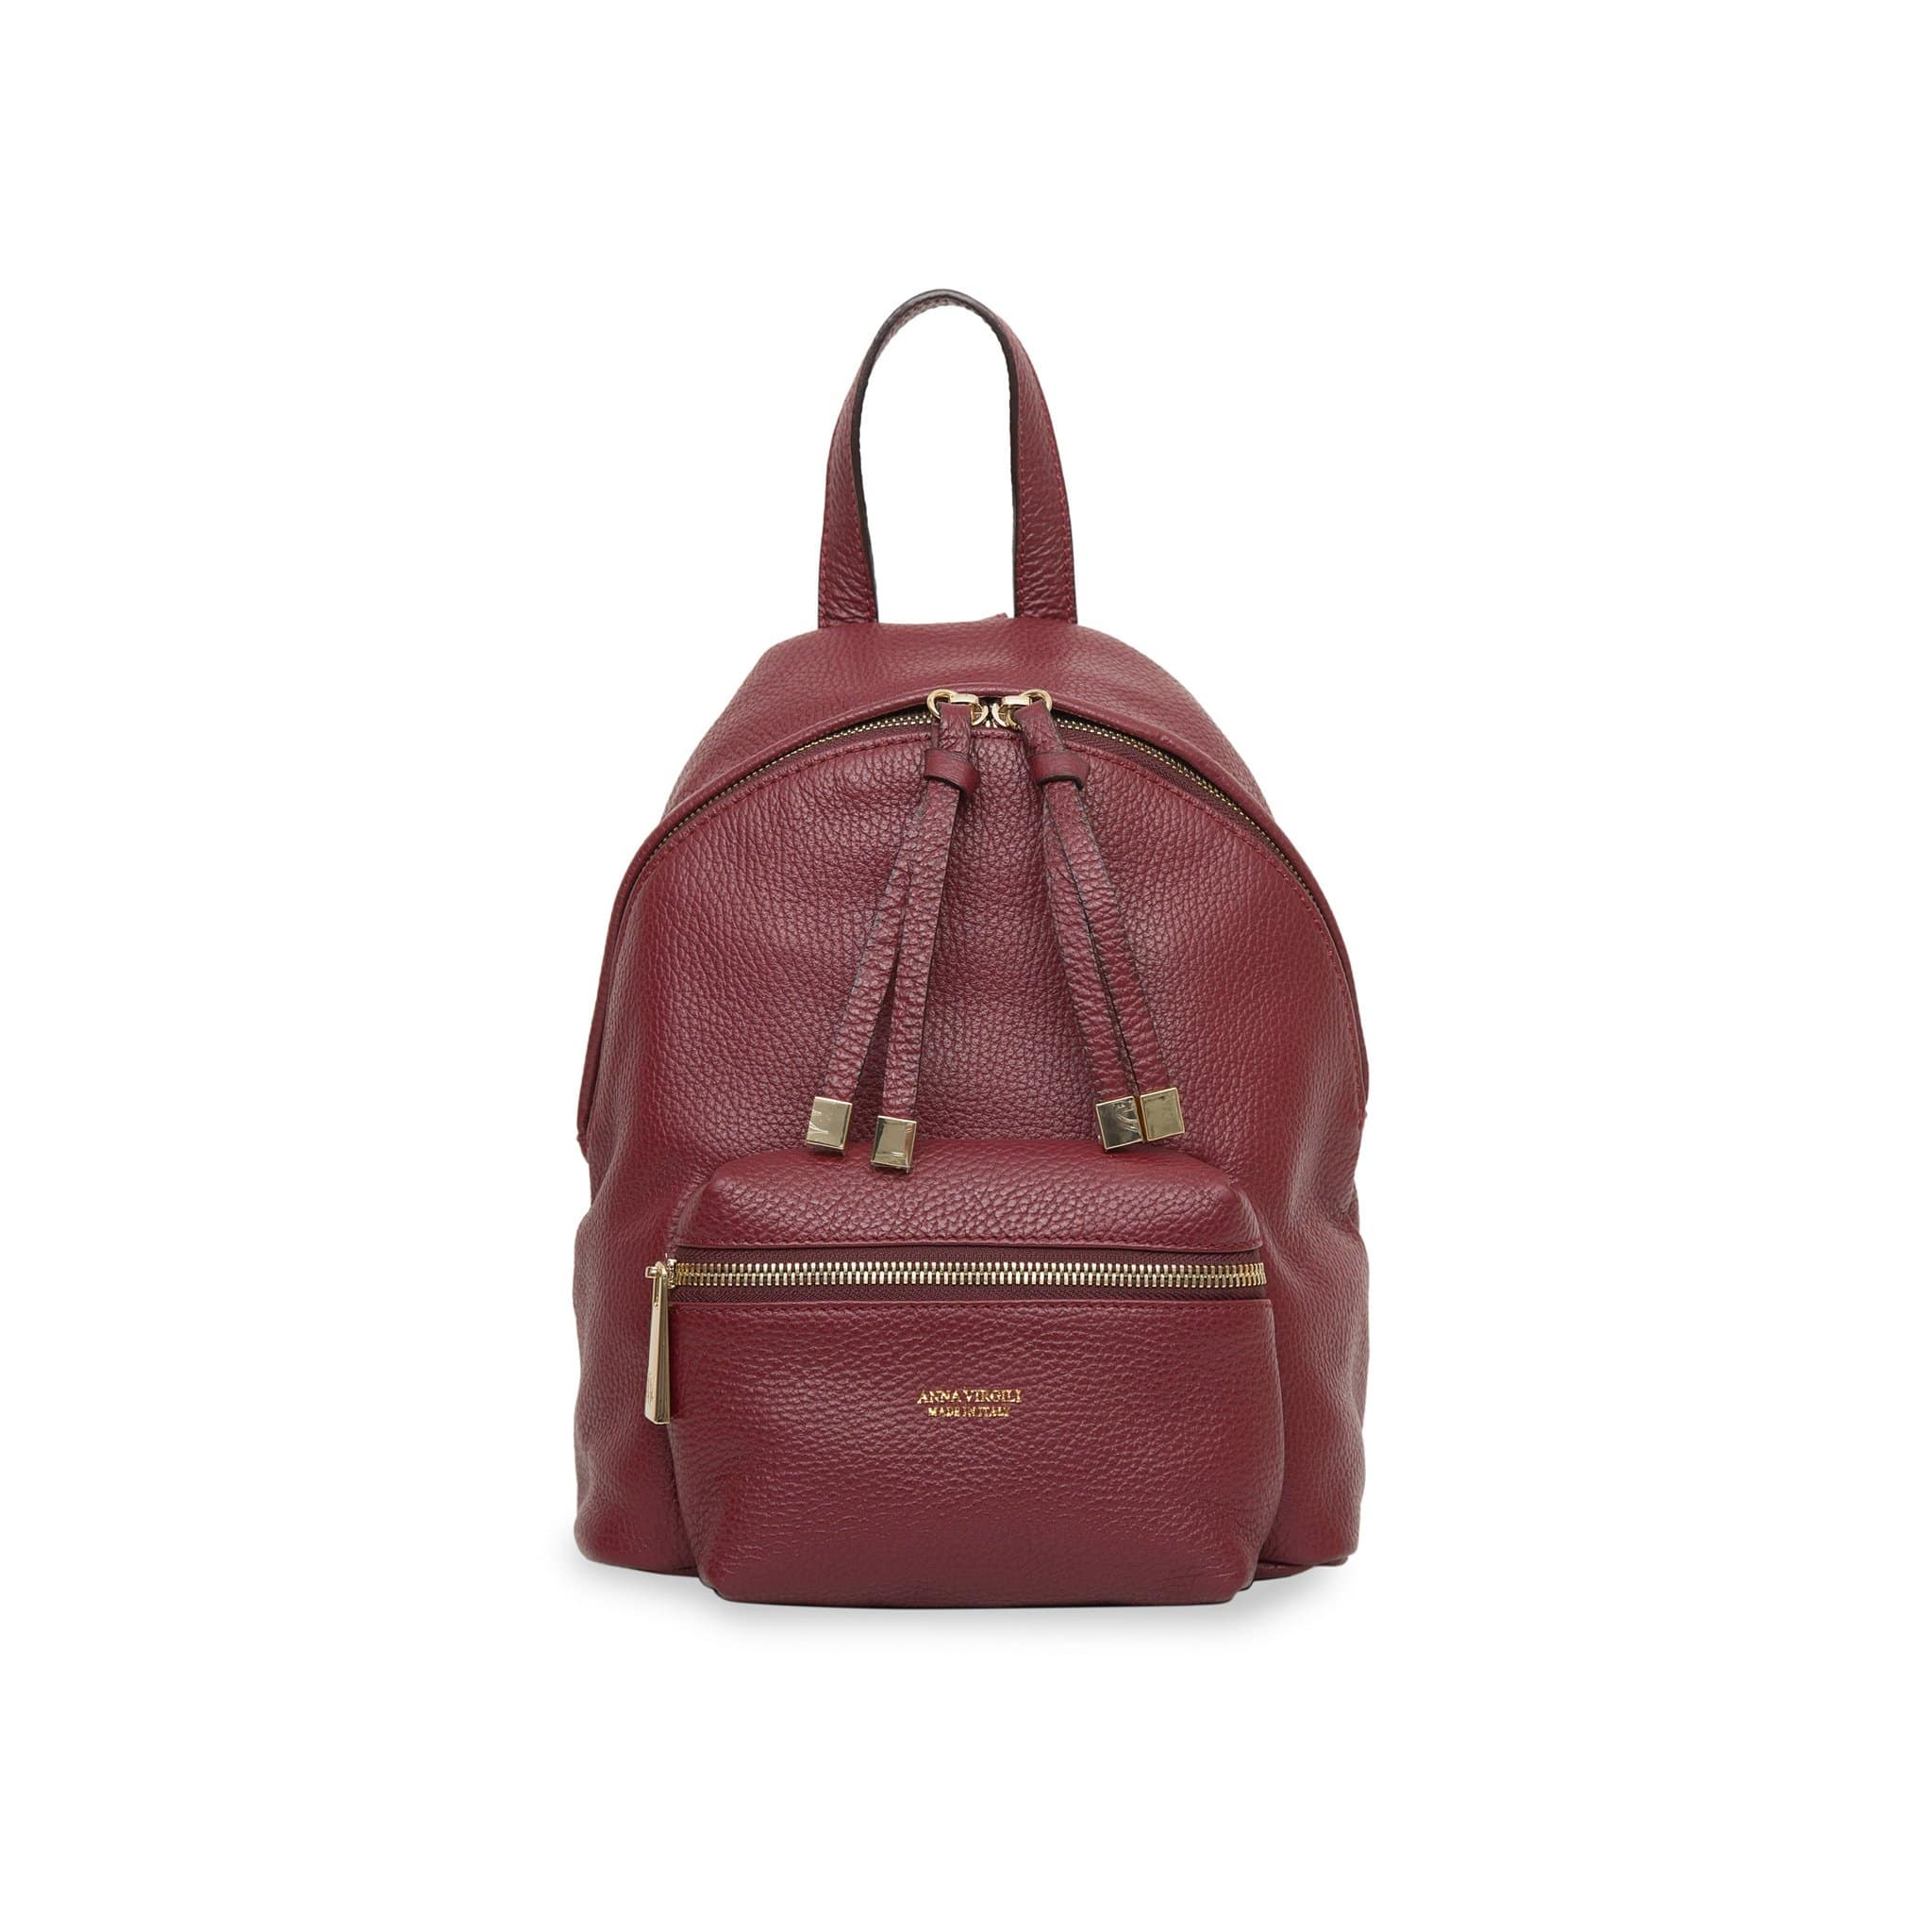 Alessia Rimini Leather Backpack - Bordeaux